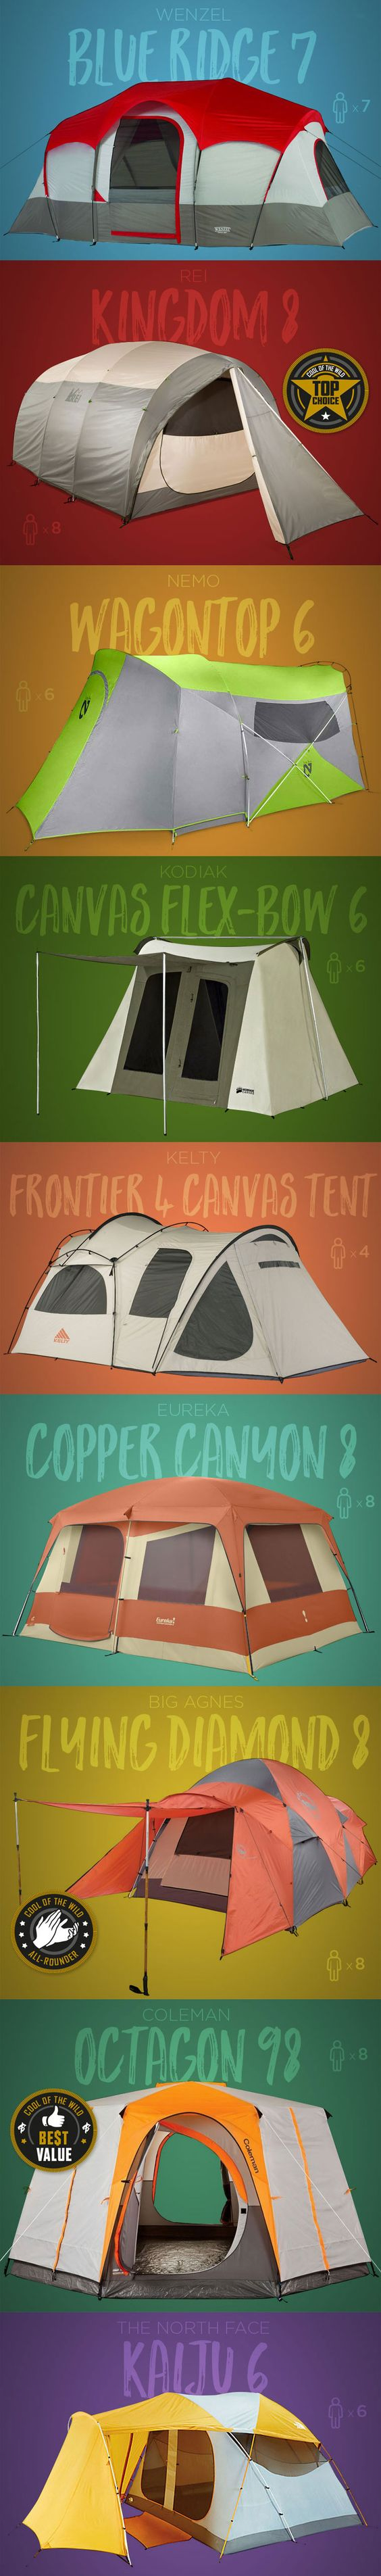 Best 25+ Coleman tent ideas on Pinterest | 6 person tent Big tent and C&ing equipment sale  sc 1 st  Pinterest & Best 25+ Coleman tent ideas on Pinterest | 6 person tent Big tent ...